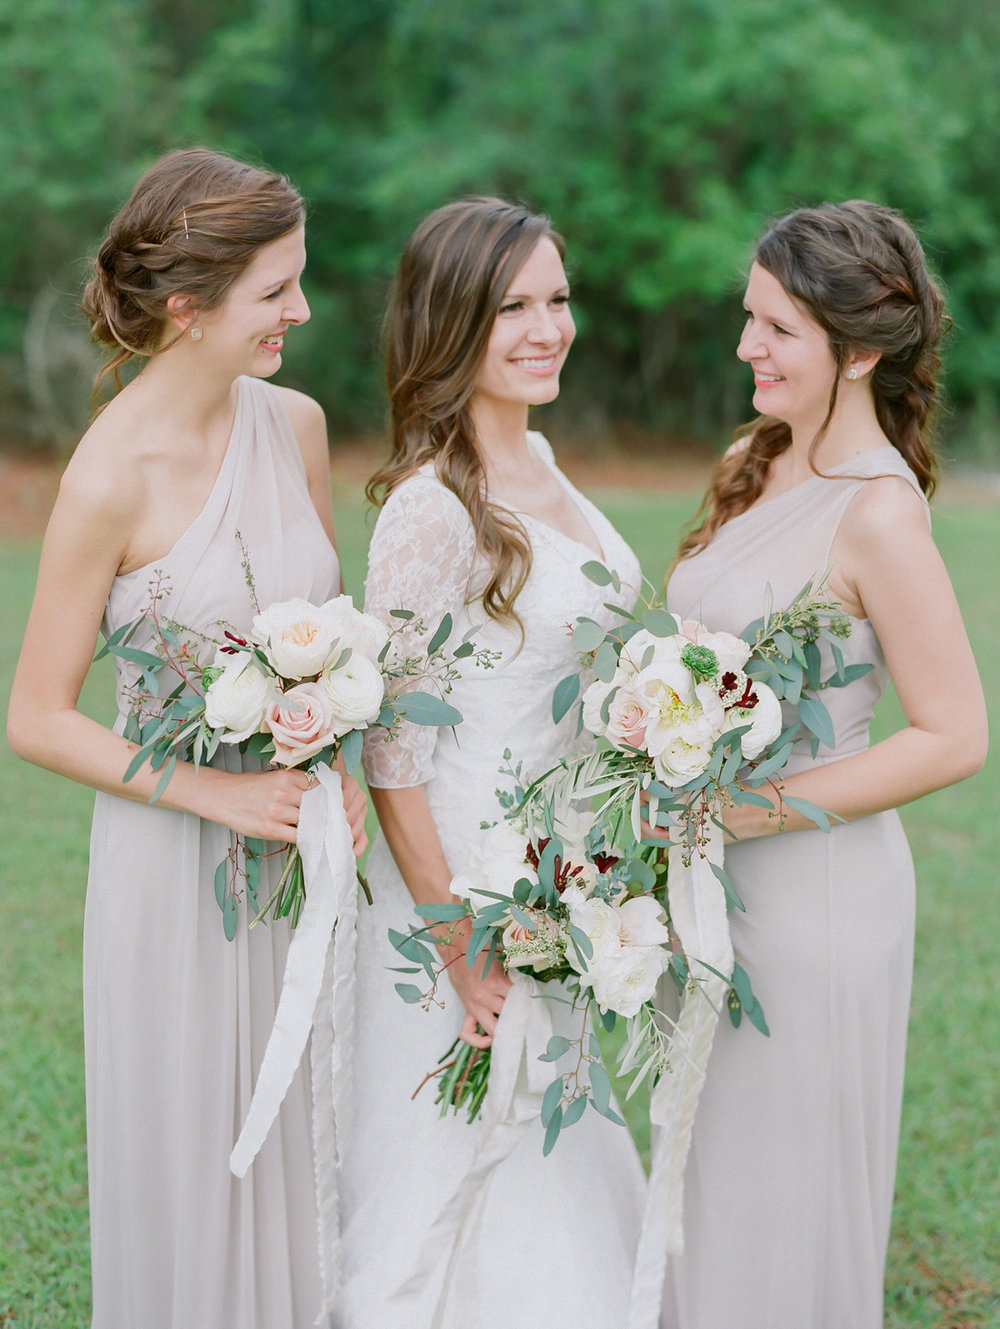 Neutral Bridesmaids Dresses | Fine Art Crestview Florida Wedding | Jennifer Blair Photography